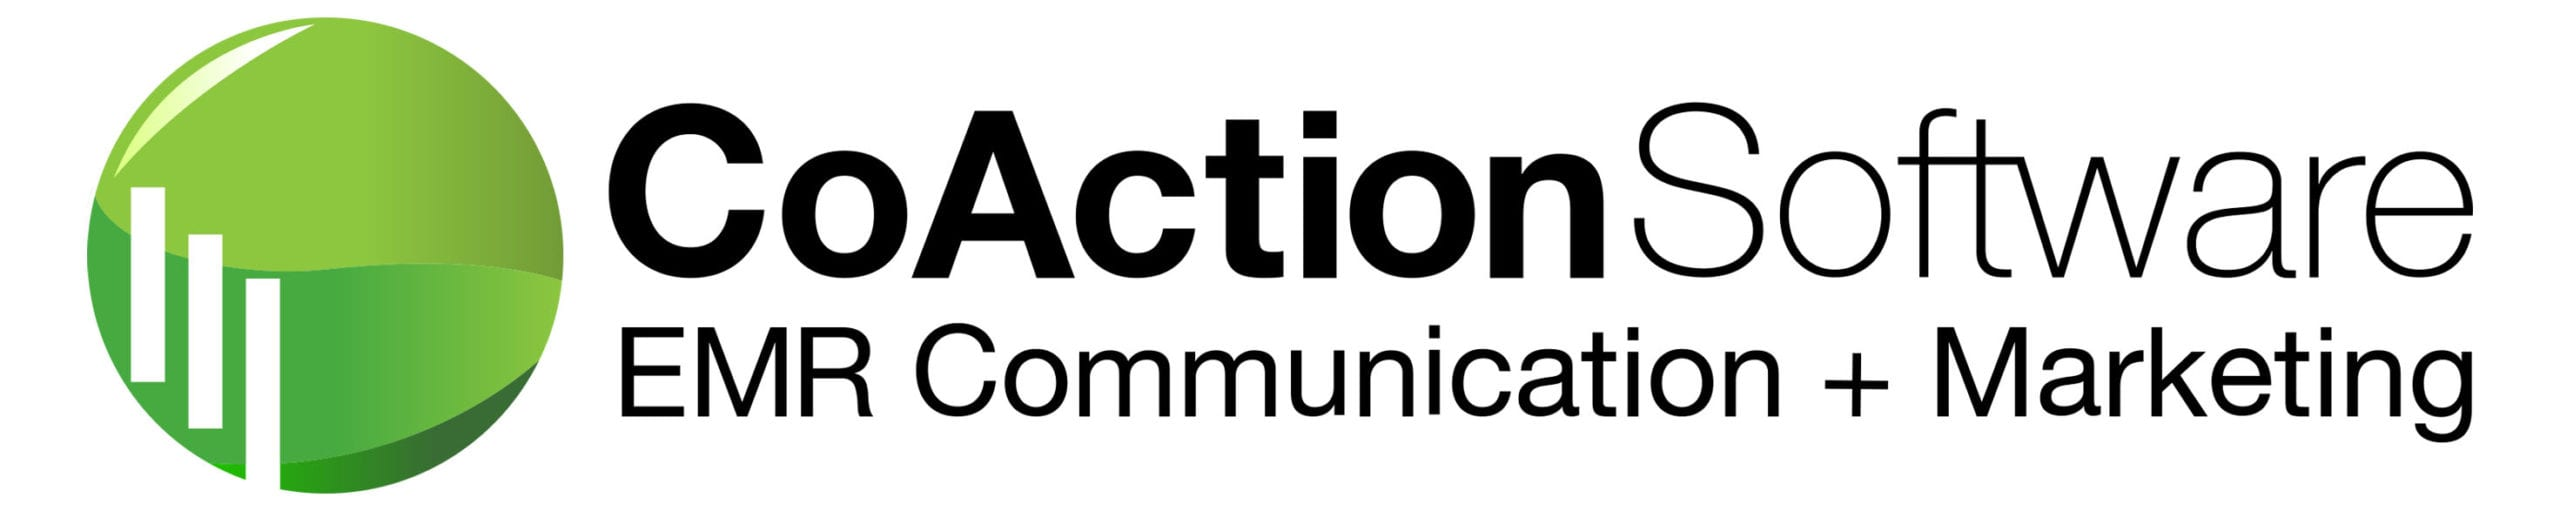 CoAction Software